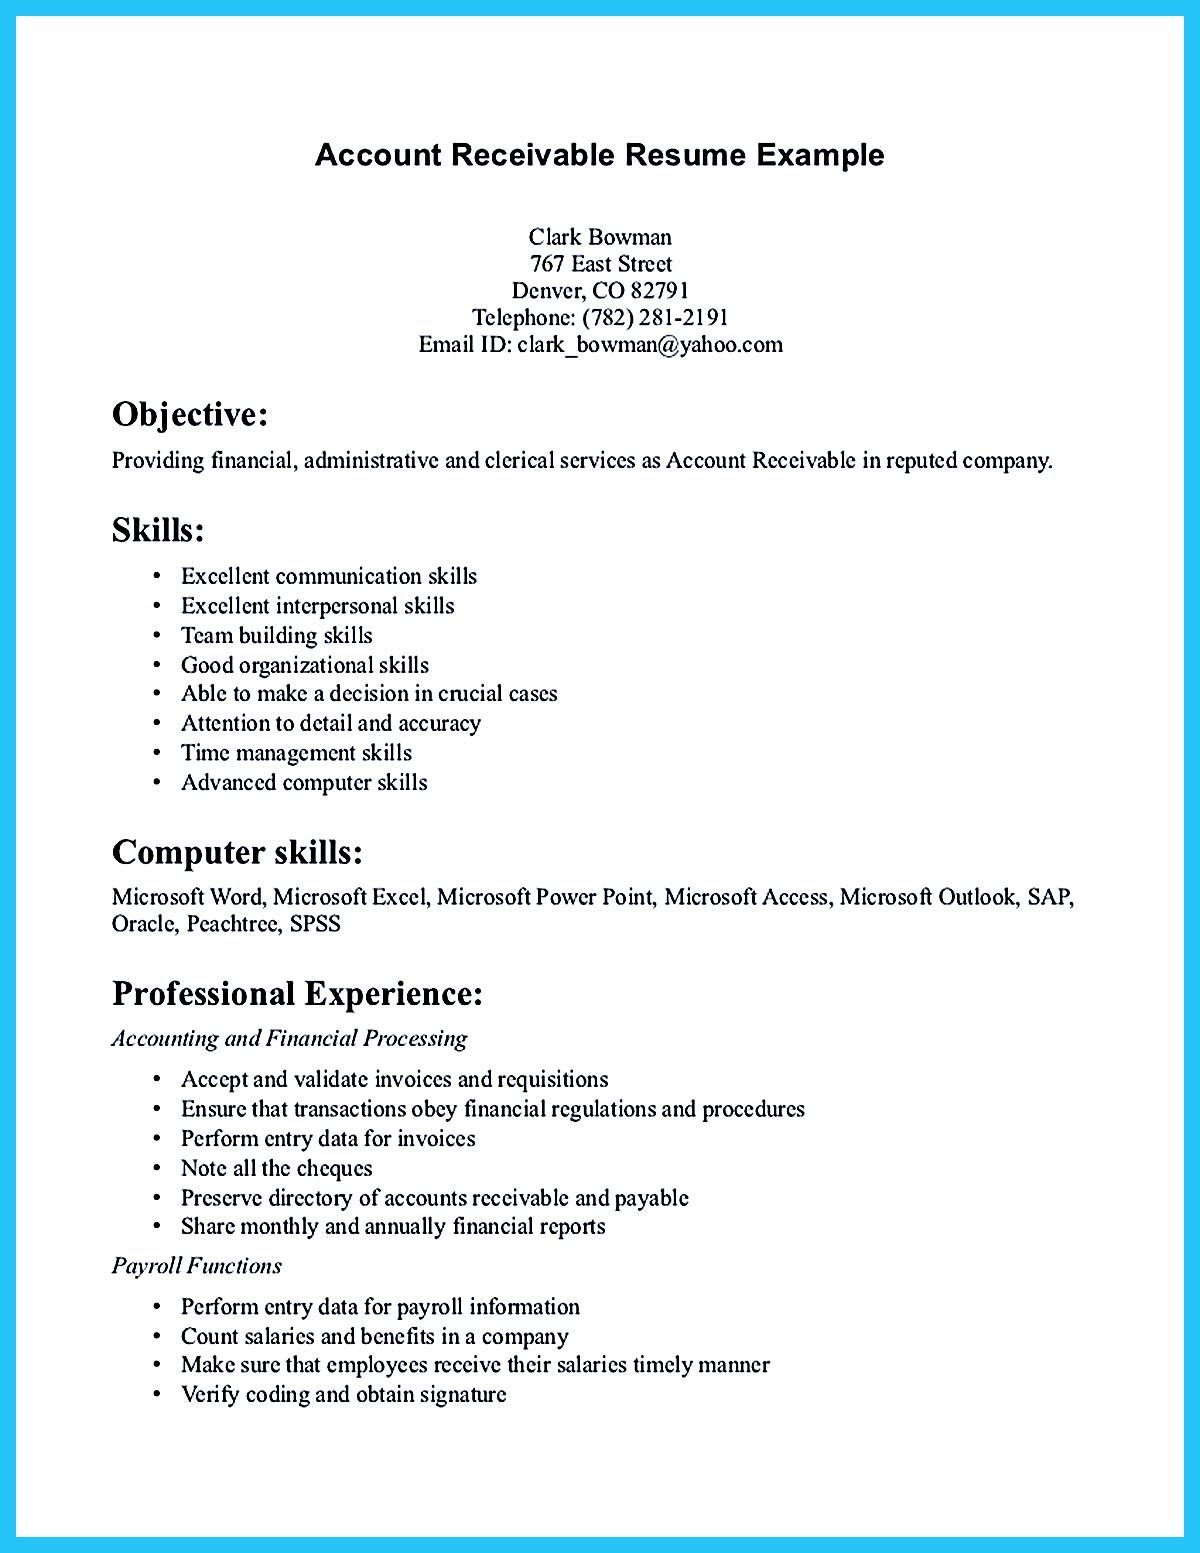 accounts receivable resume presents both skills and also the strengths of candidate in Resume Resume Skills And Strengths Examples